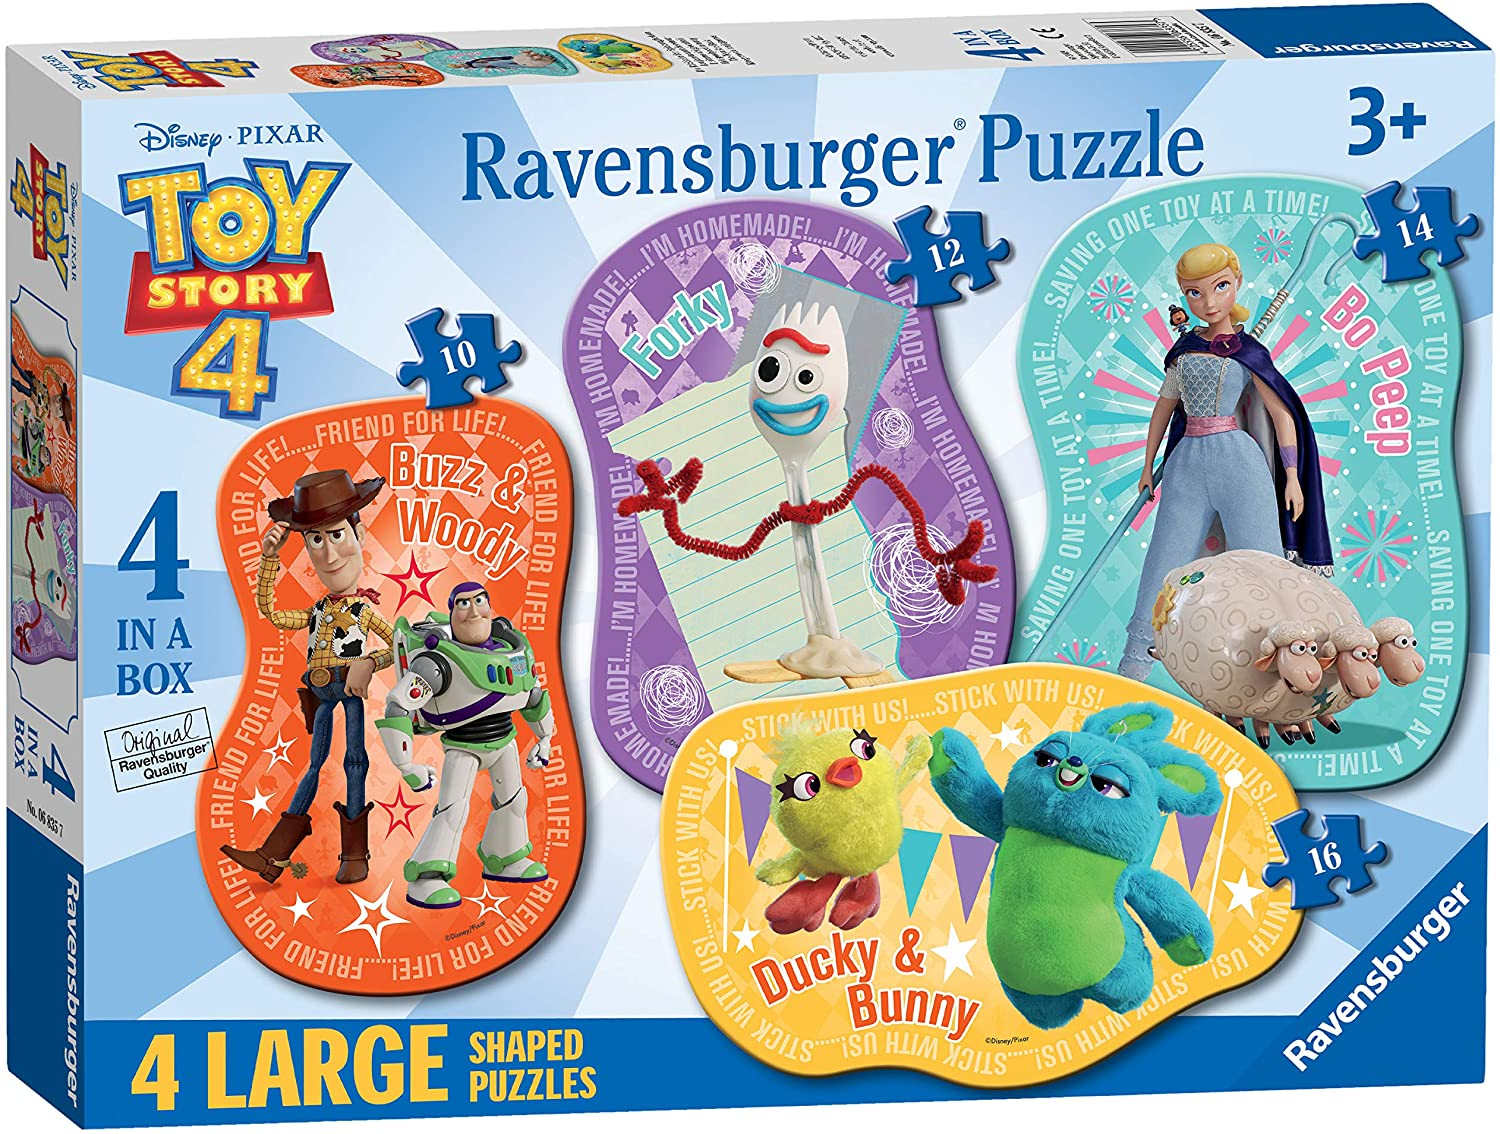 Disney Pixar: Toy Story 4: 4-in-1 Shaped Puzzles